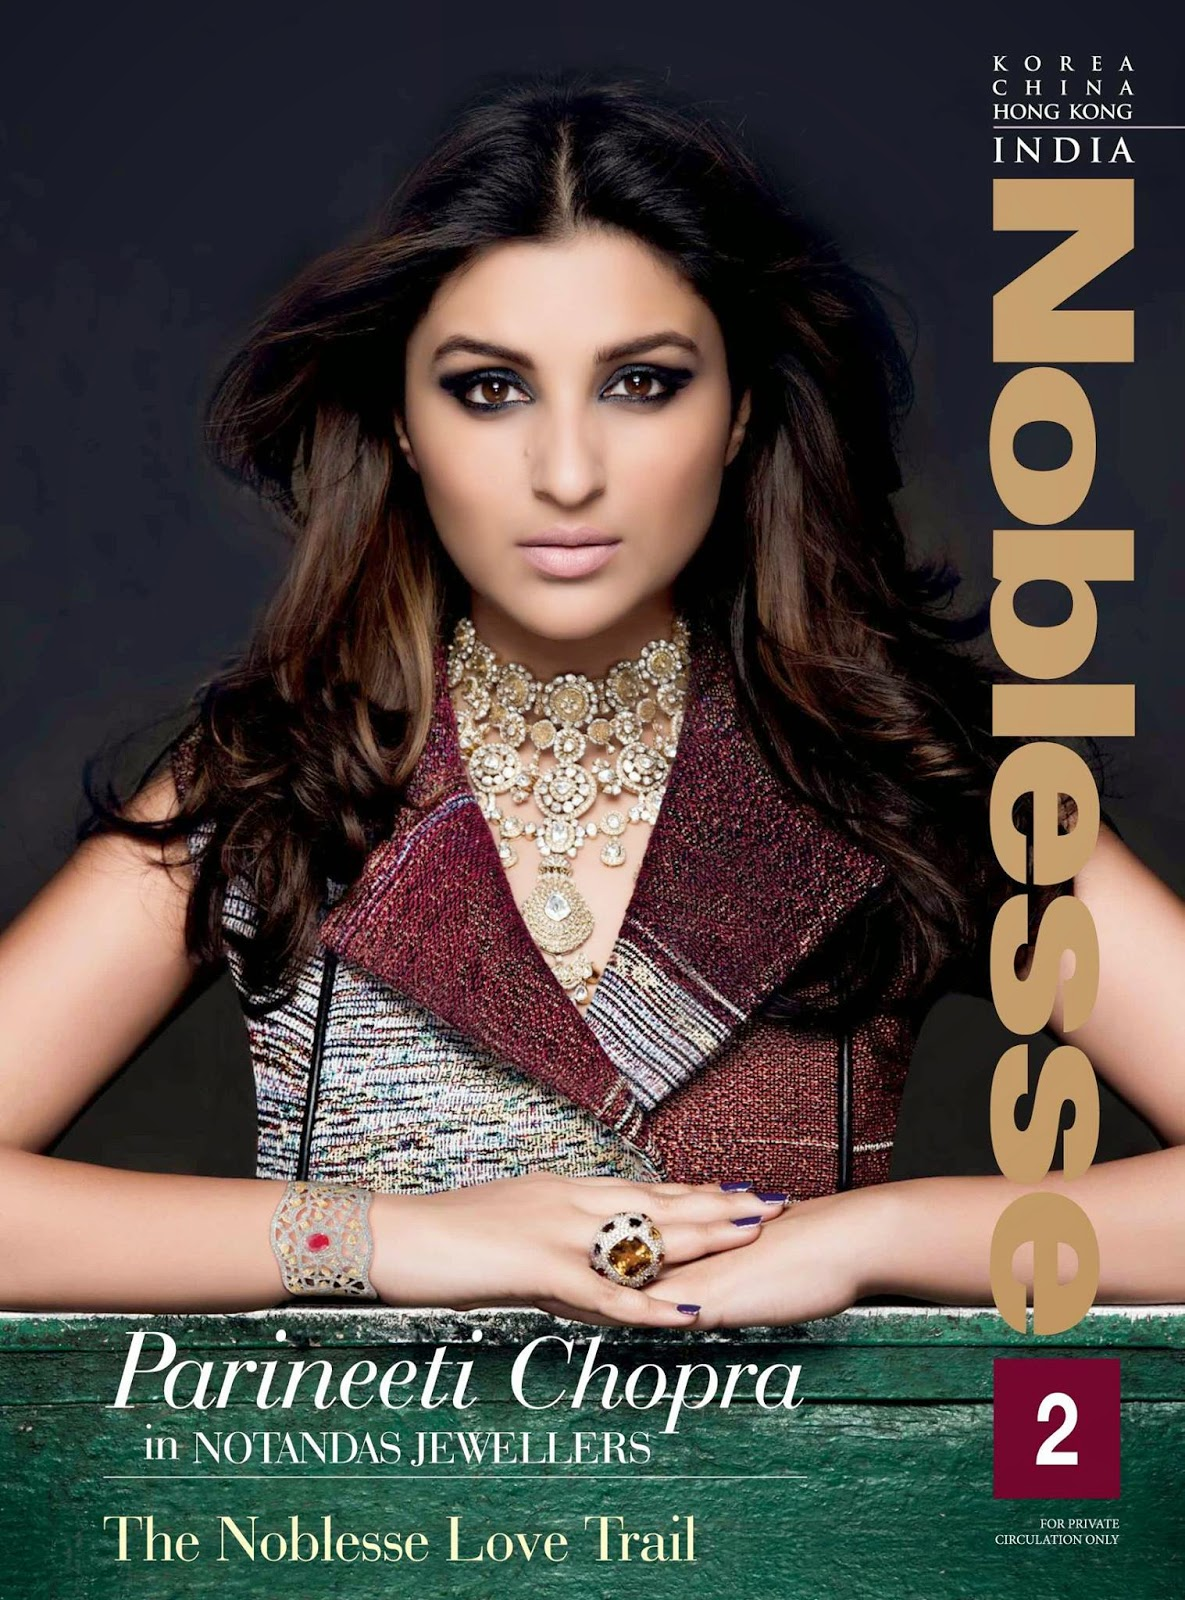 Actress: Parineeti Chopra For Noblesse India